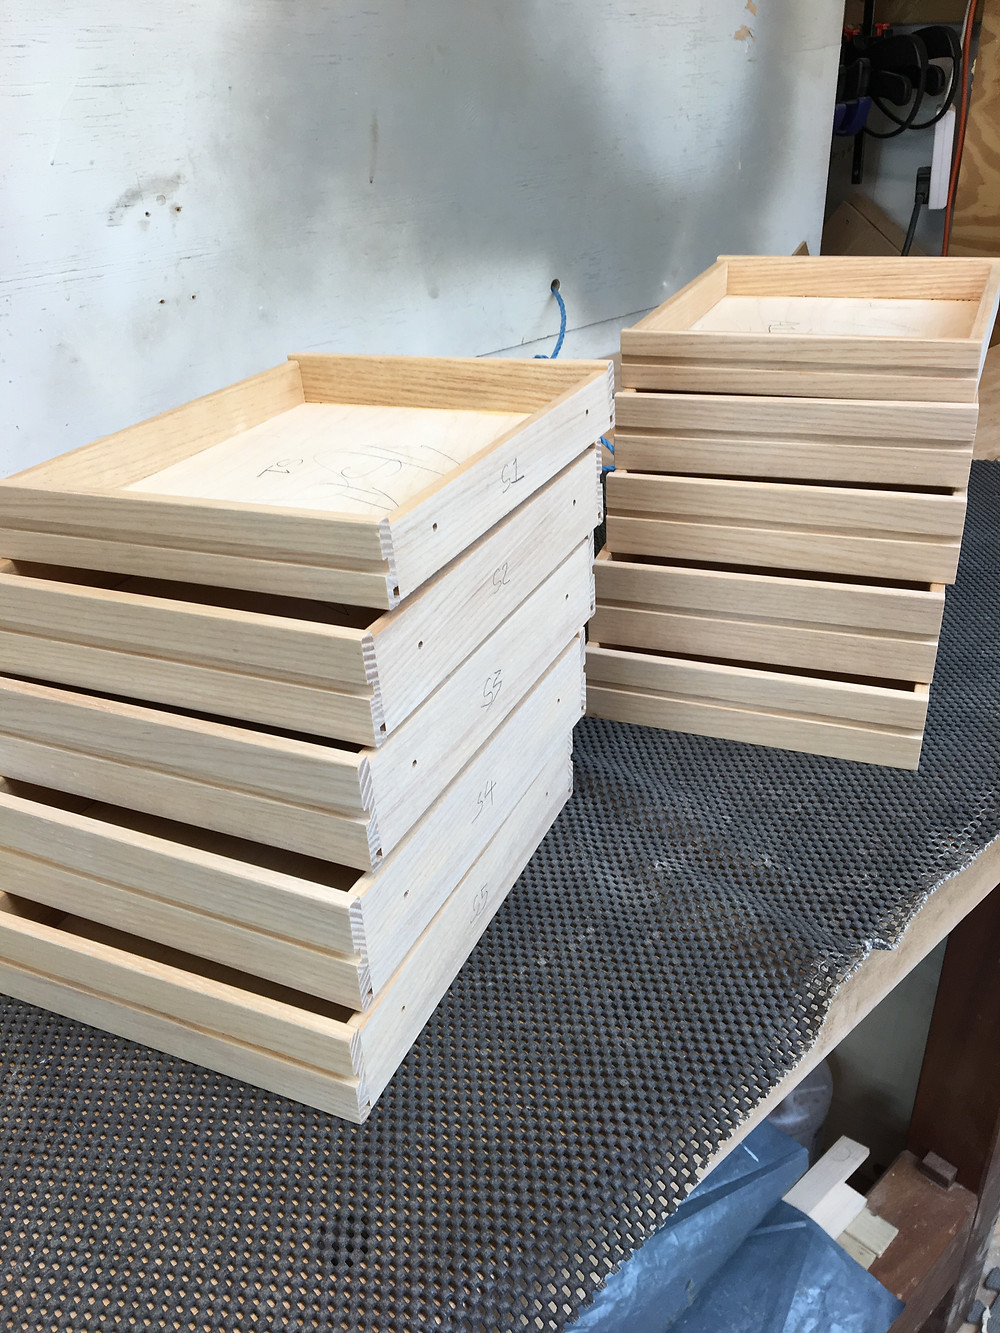 The ash drawers are glued up